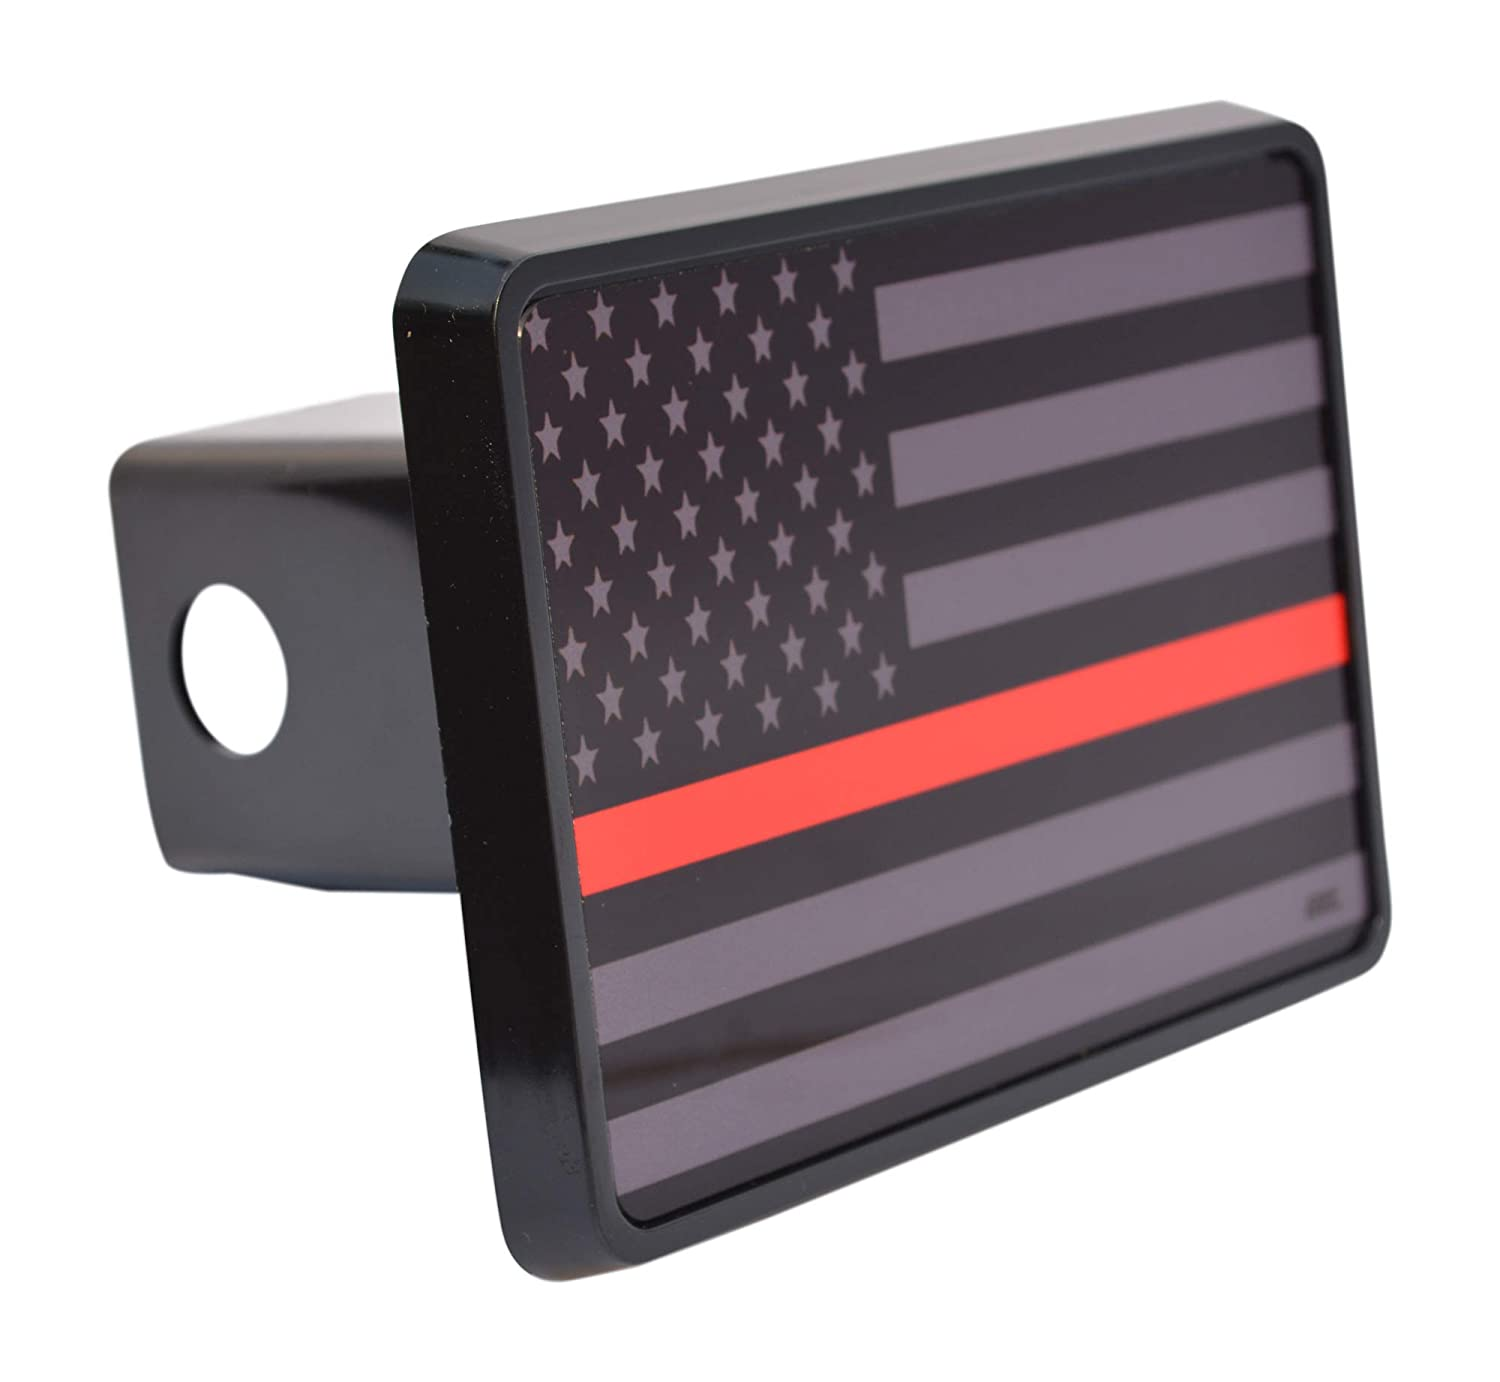 Rogue River Tactical Subdued Thin Red Line Flag Trailer Hitch Cover Plug US Firefighter Fire Fighter Truck Department FD VV303